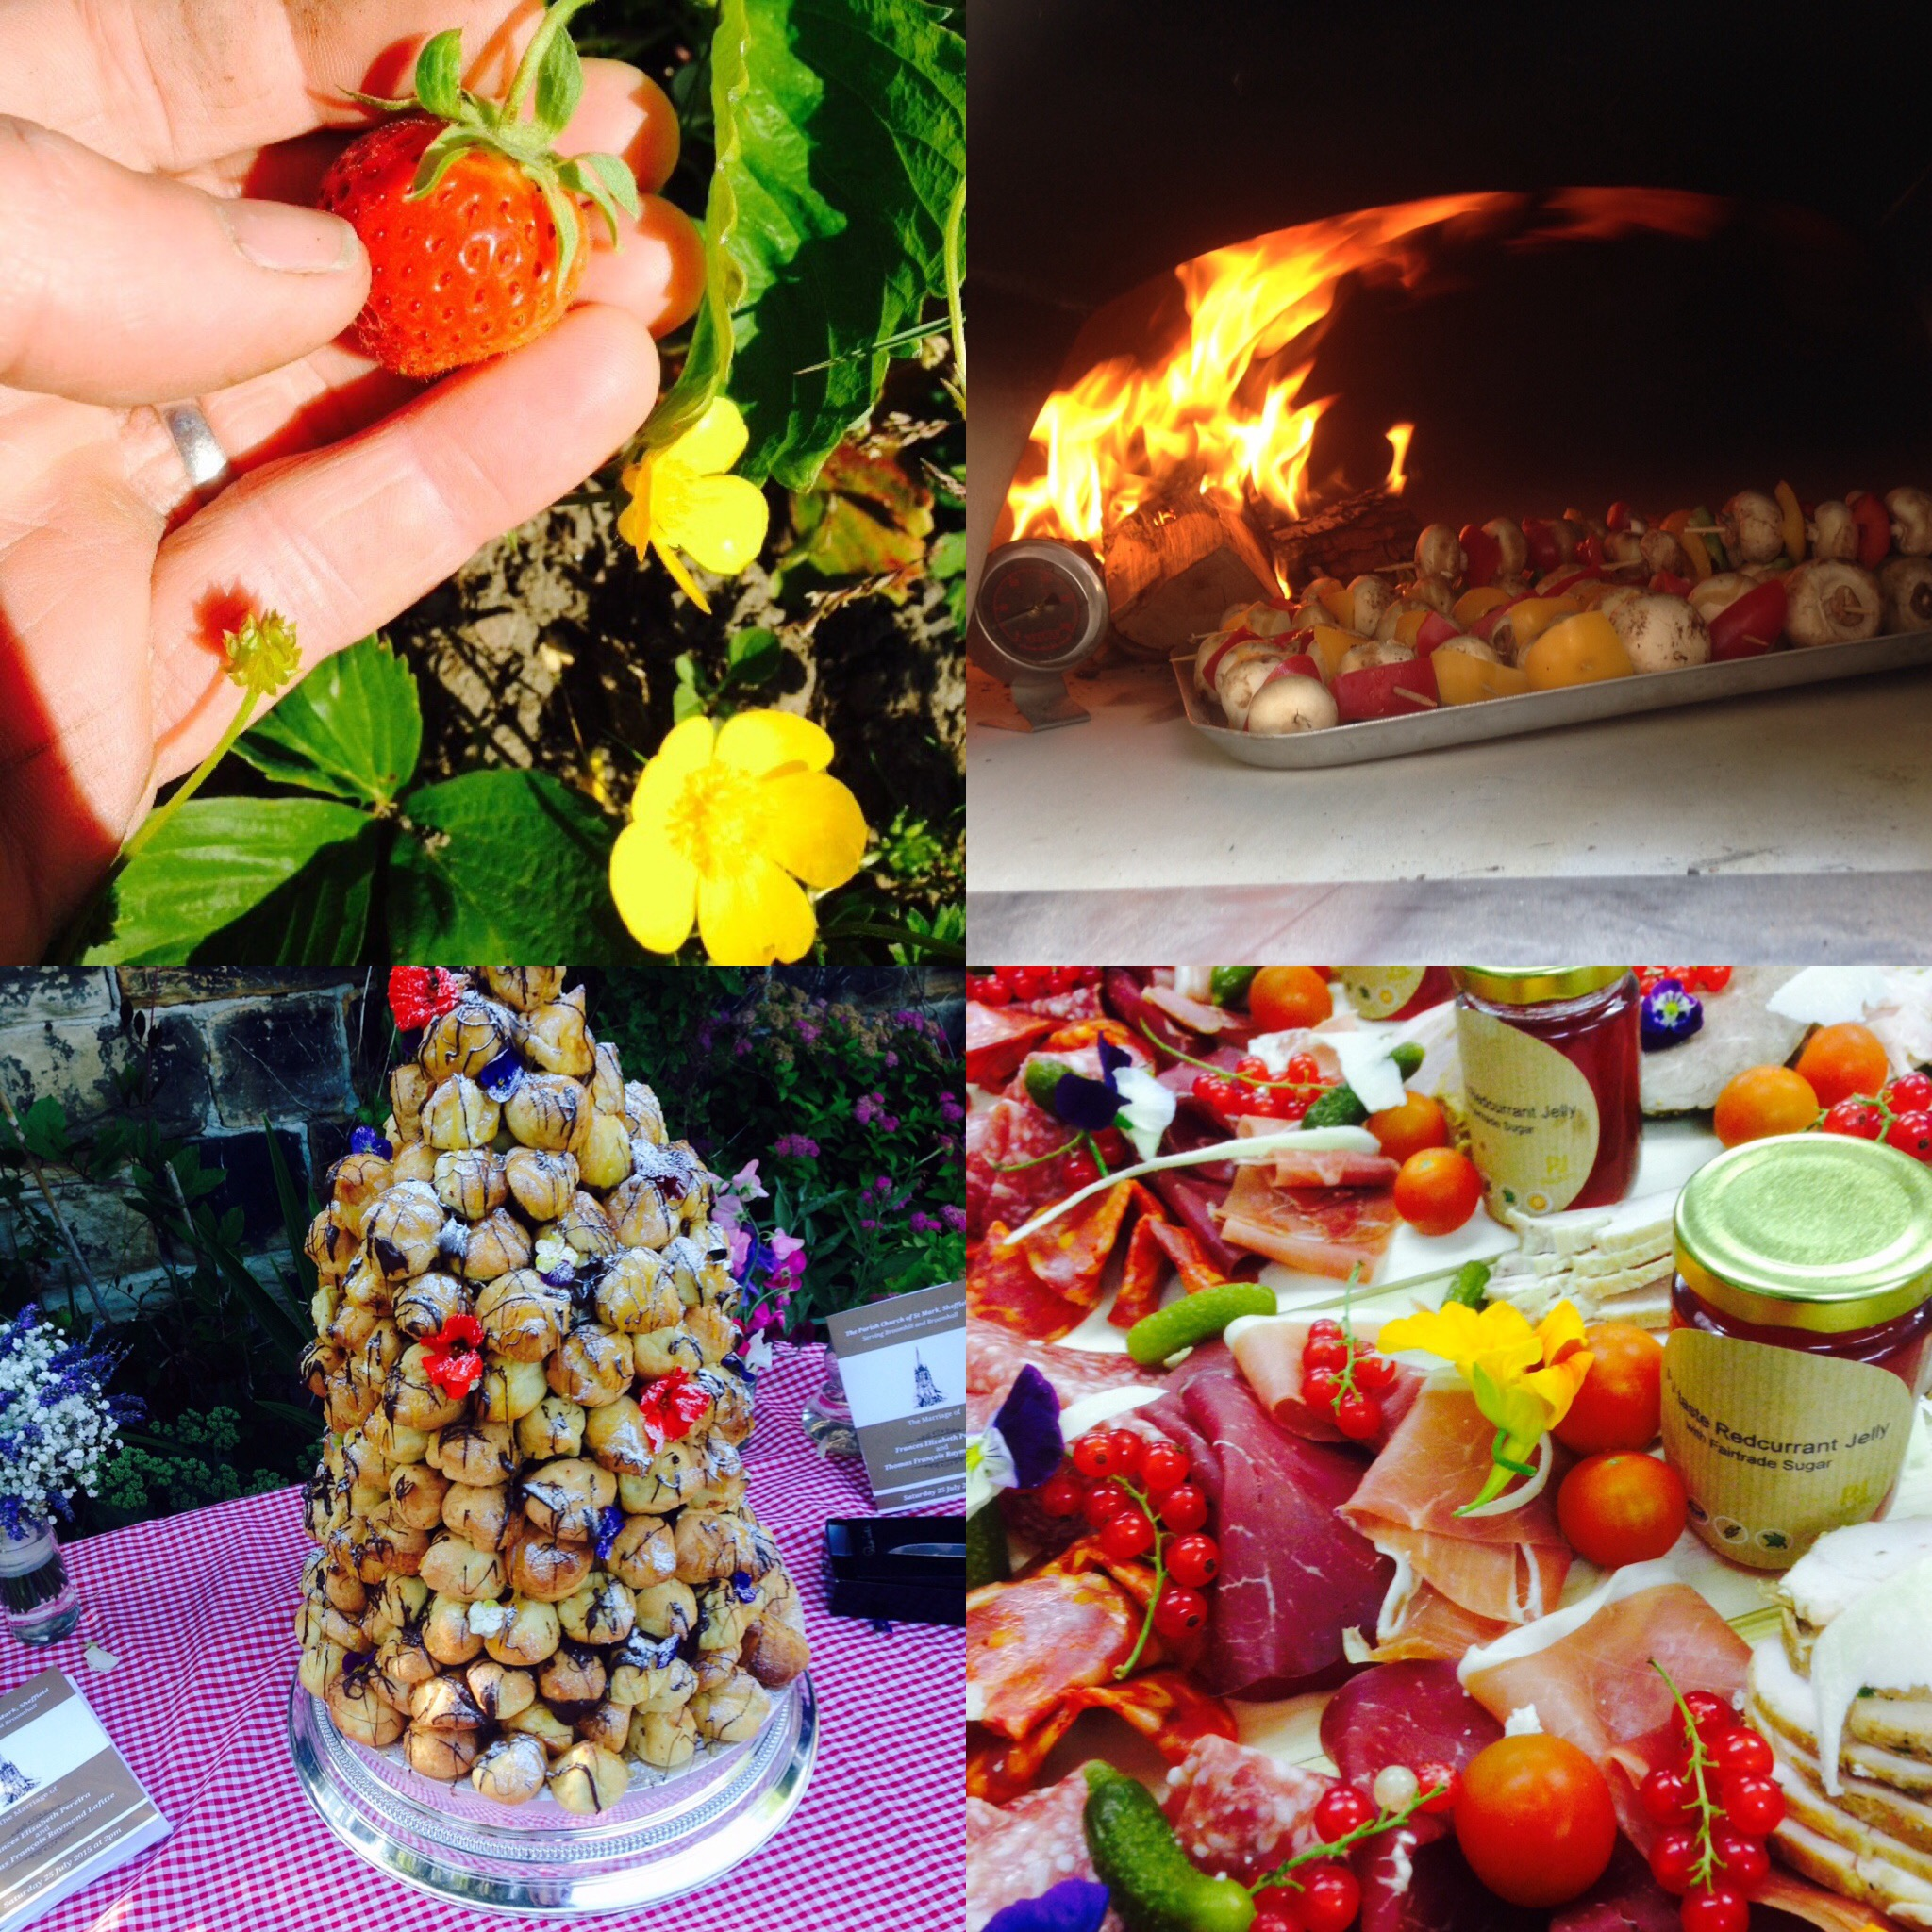 Croque en bouchee, meat platters, pizza oven and strawberry picking with PJ taste